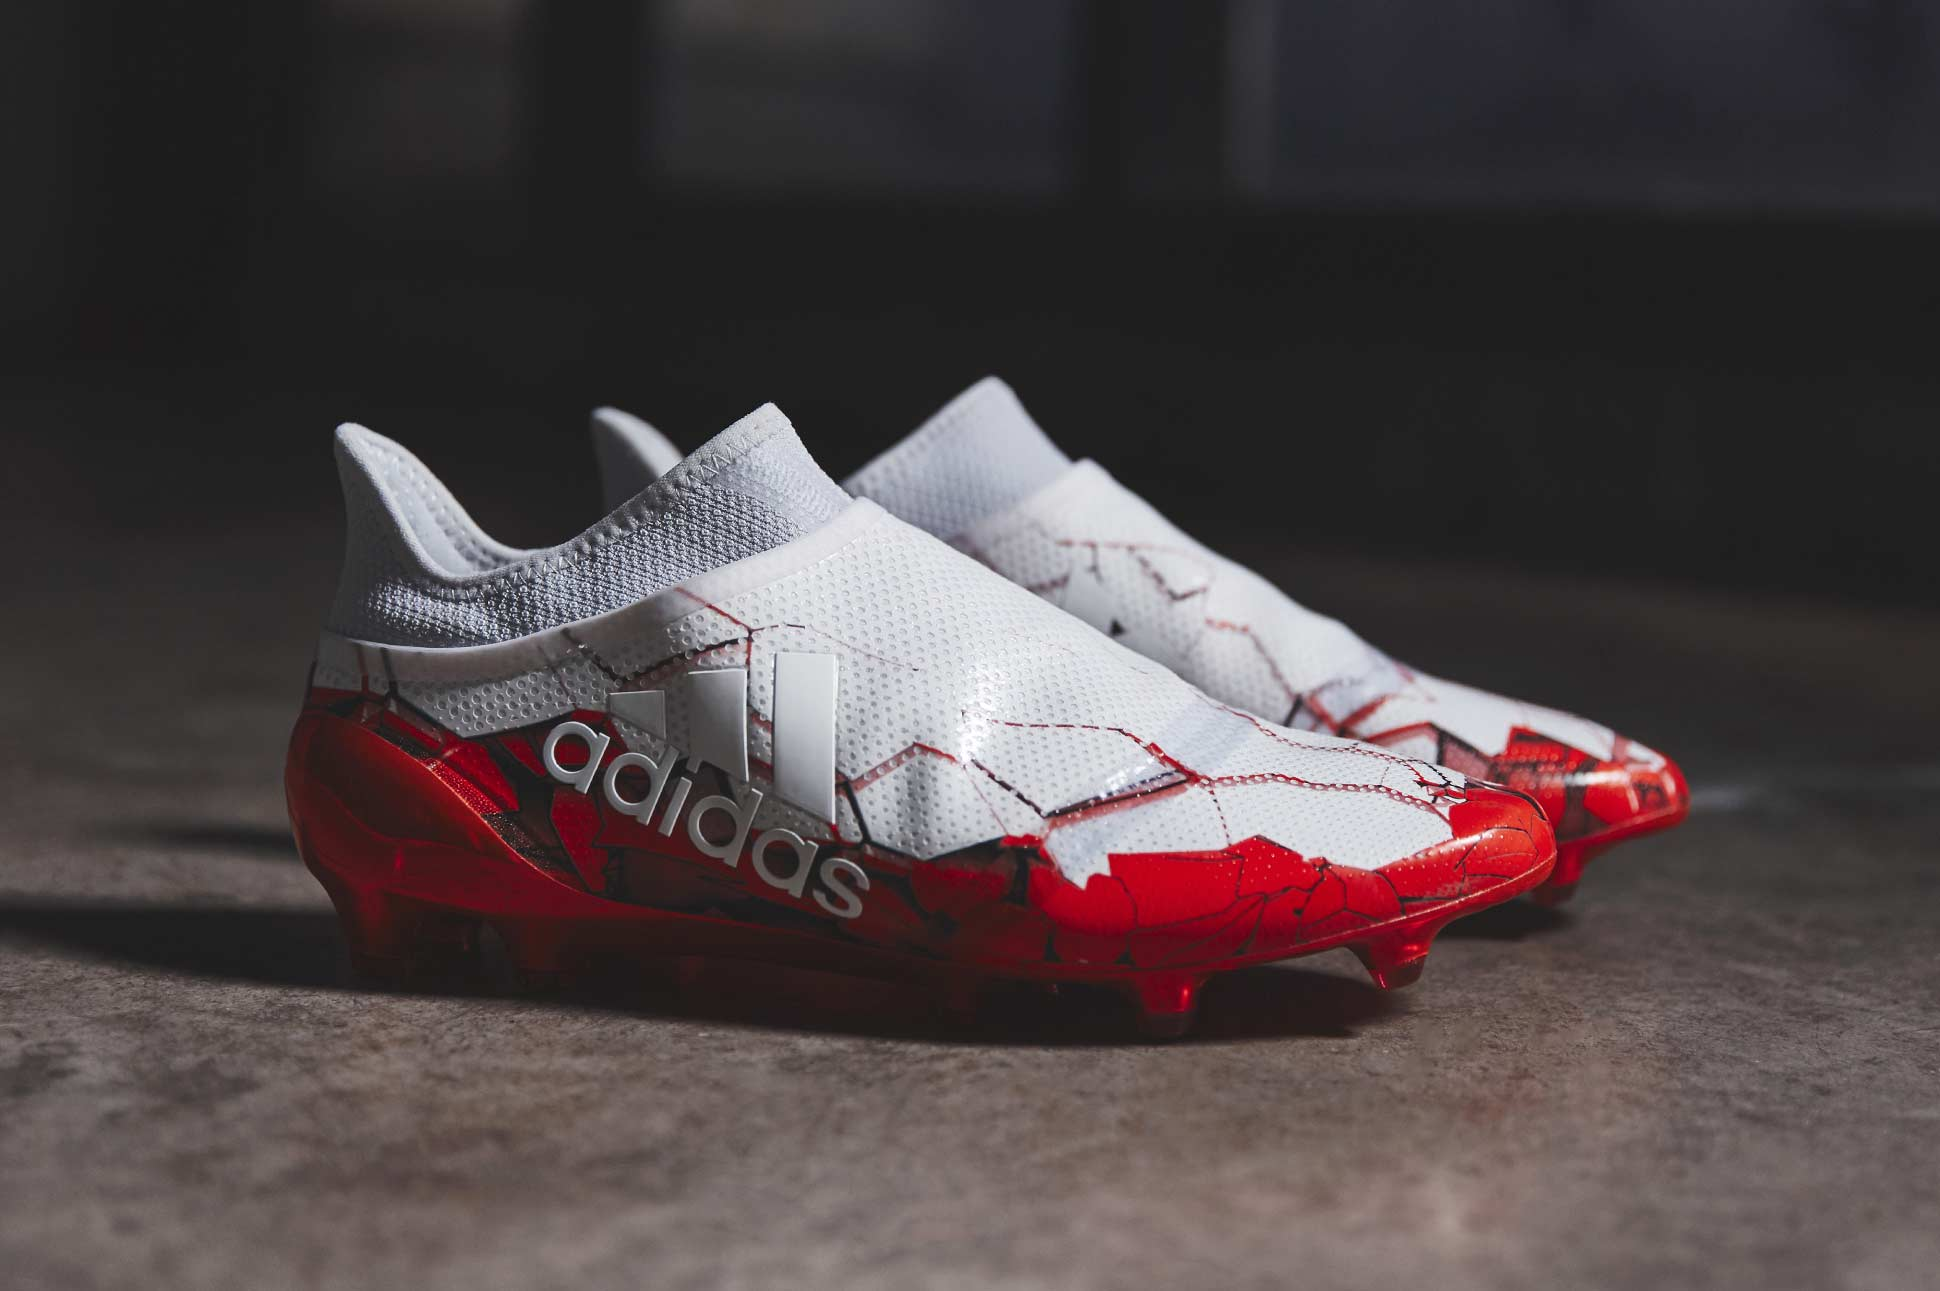 size 40 1ae69 f2669 adidas X 17+ Purespeed Confederations Cup Football Boots - SoccerBible.